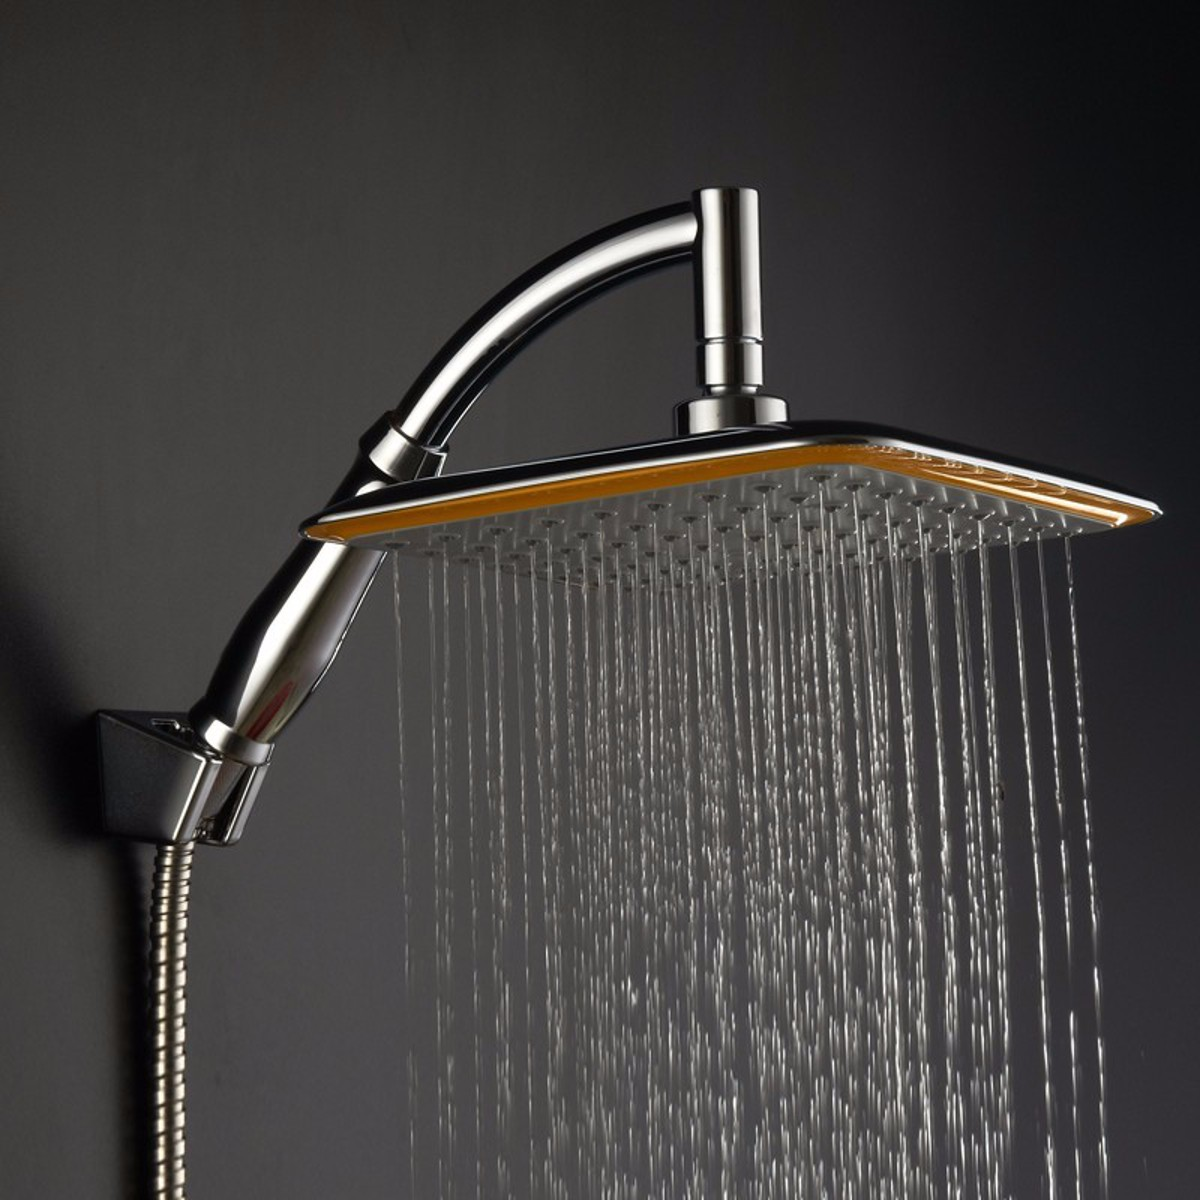 Chrome ABS Rainfall Shower Head Faucet Home & Kitchen Extension with Shower Arm and Hose Kit